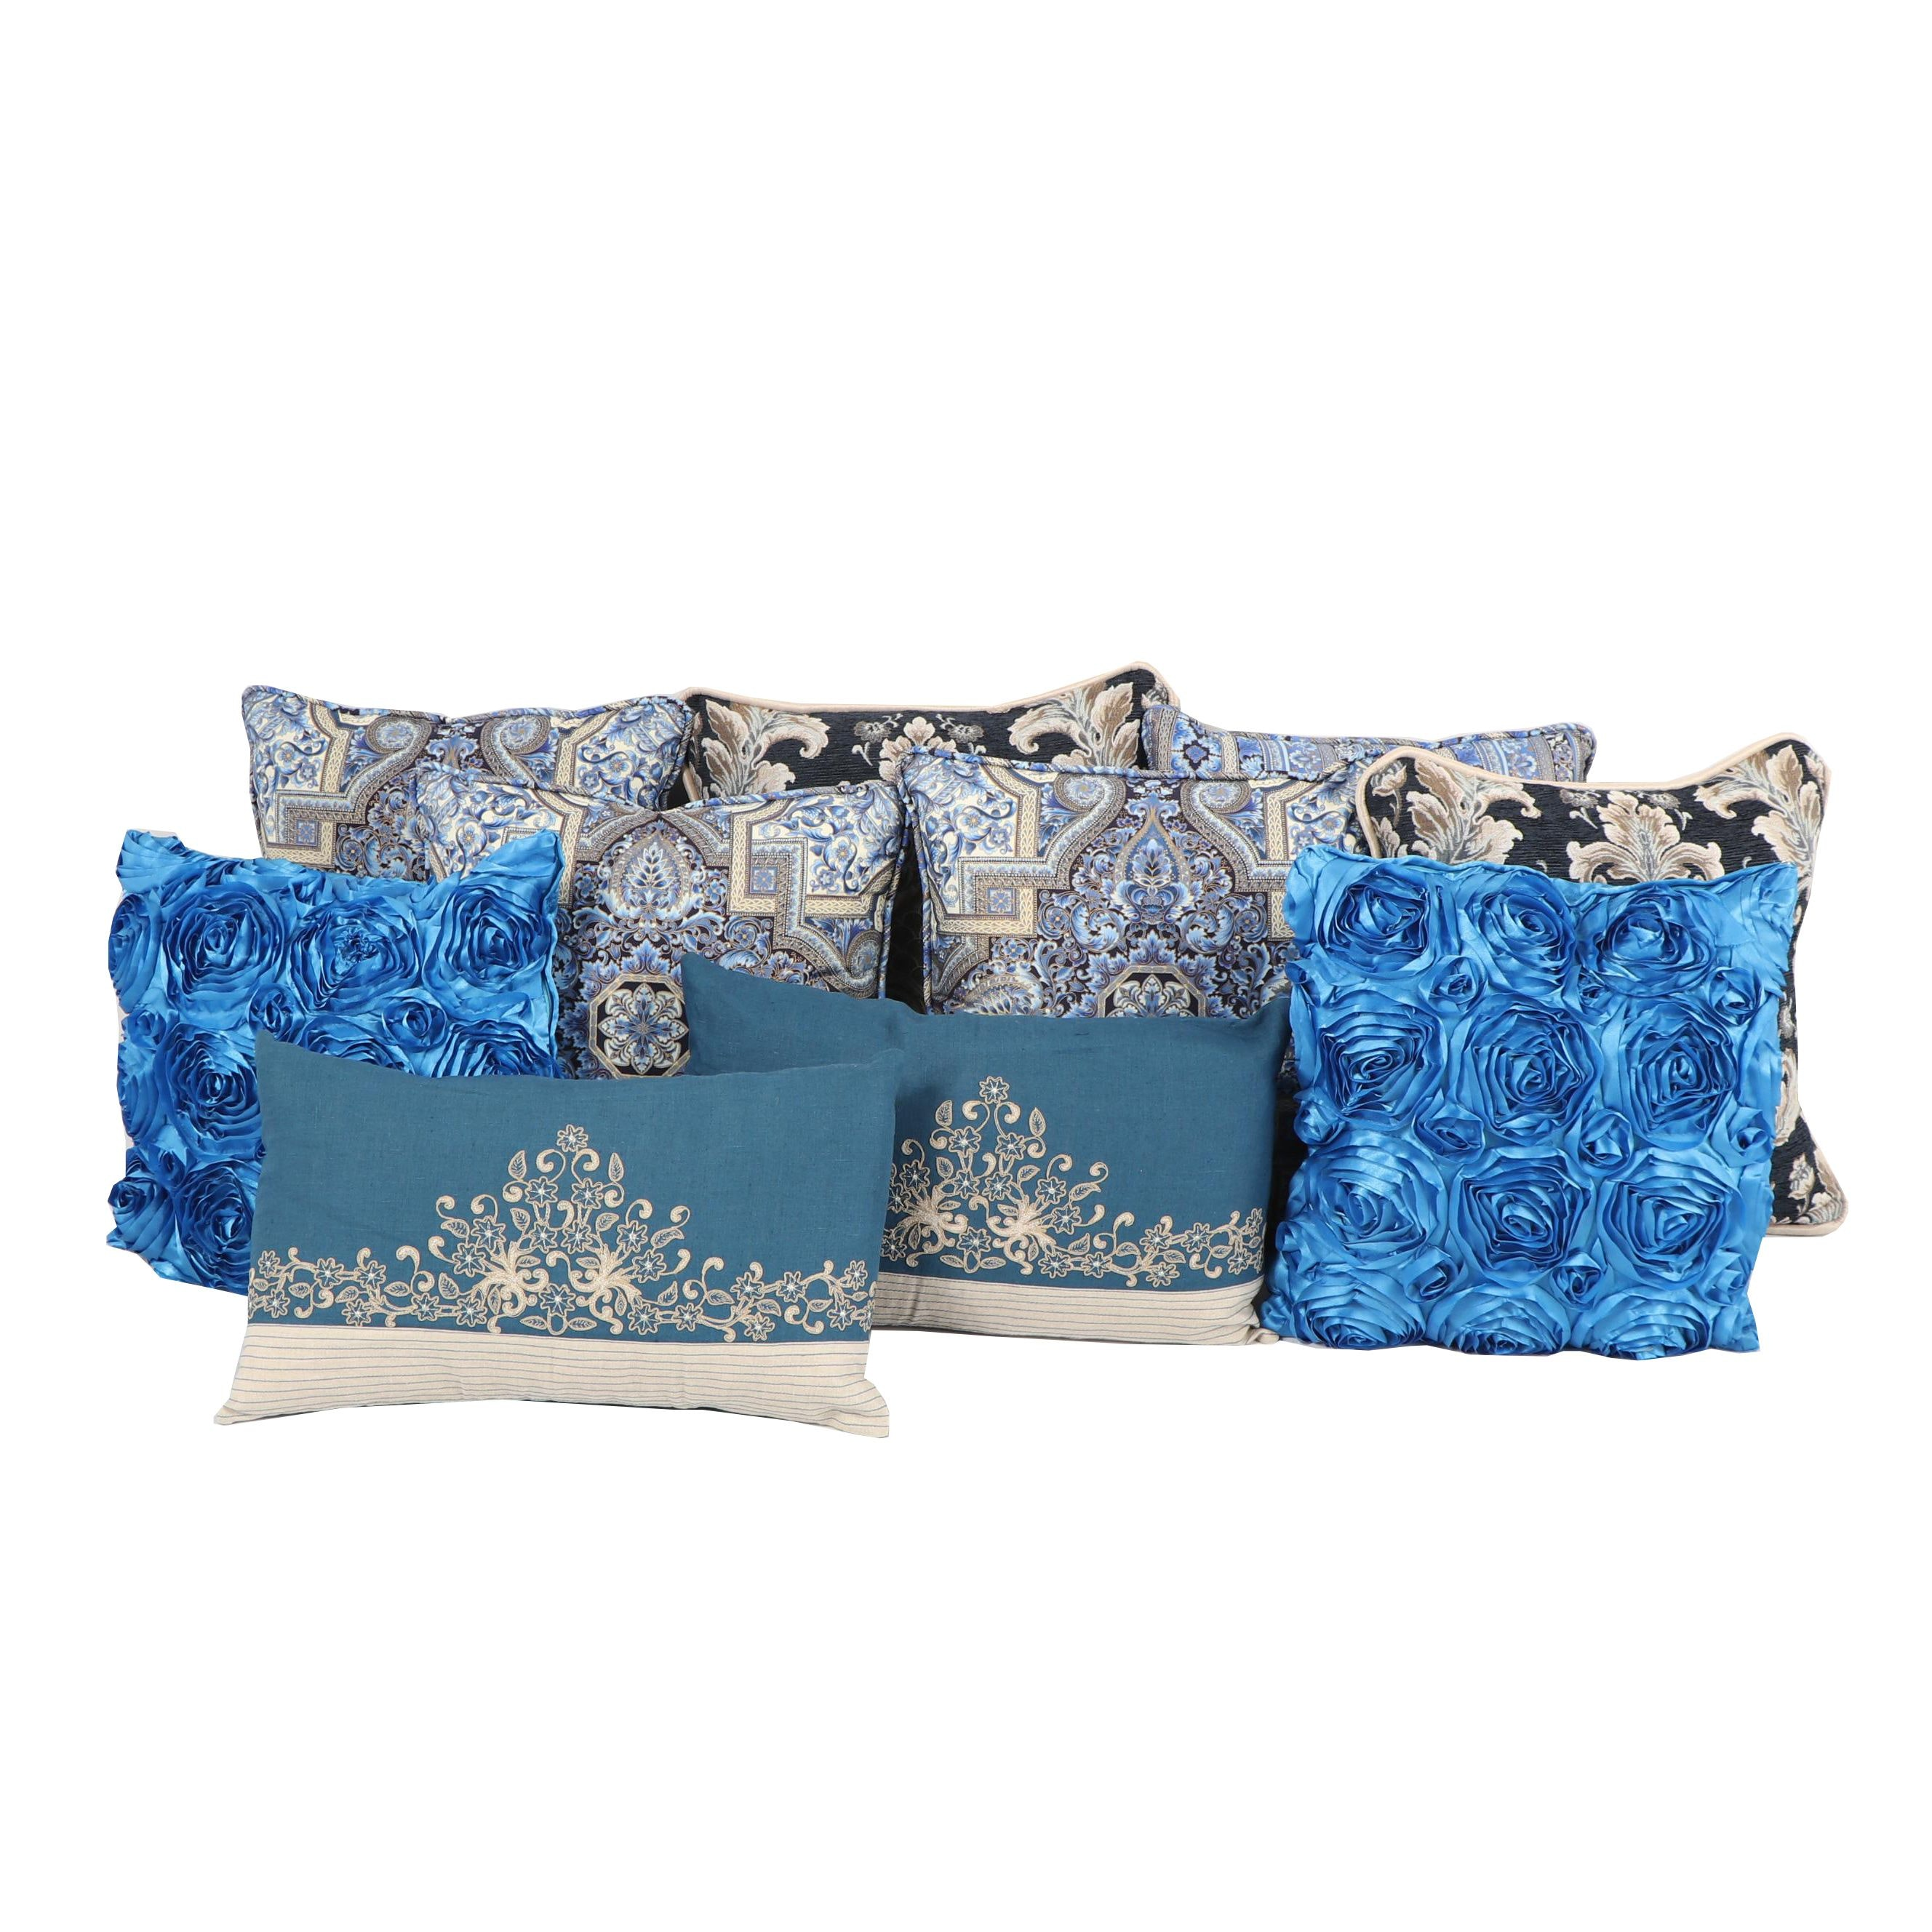 Embellished Accent Pillows Featuring Safavieh